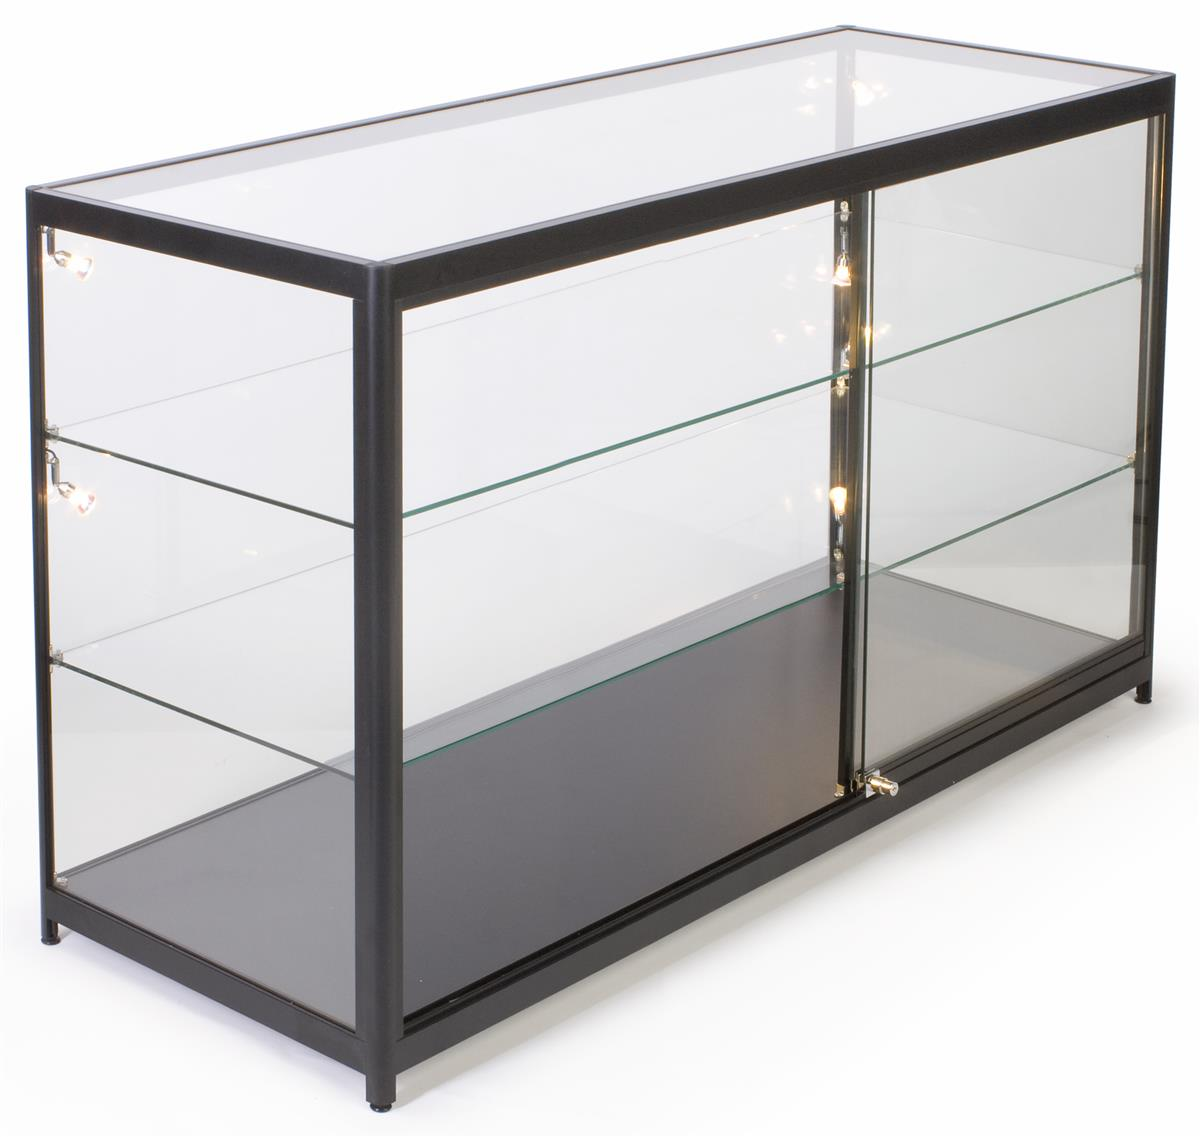 glass top illuminated merchandise display case halogen lighting. Black Bedroom Furniture Sets. Home Design Ideas